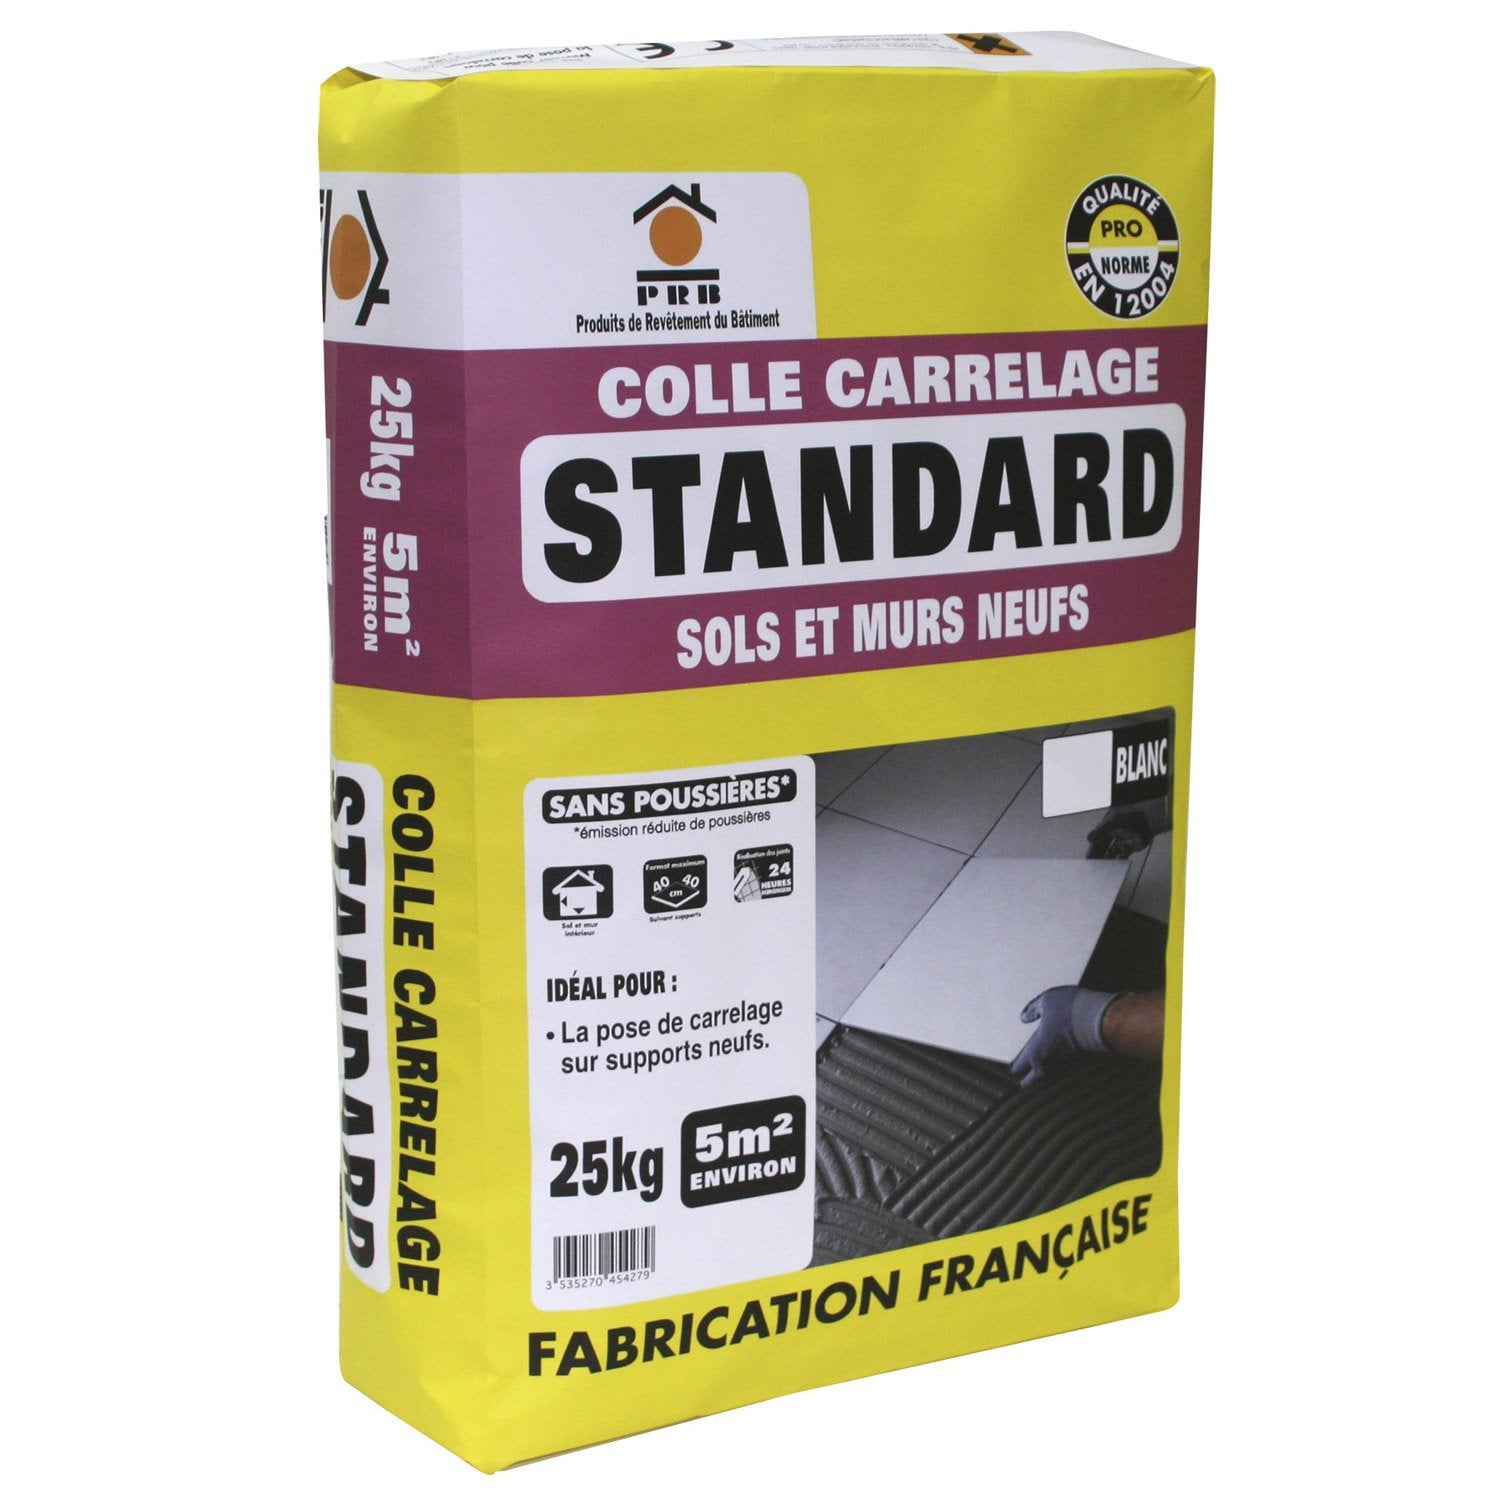 Quel mortier colle pour carrelage exterieur construction for Colle carrelage etanche exterieur